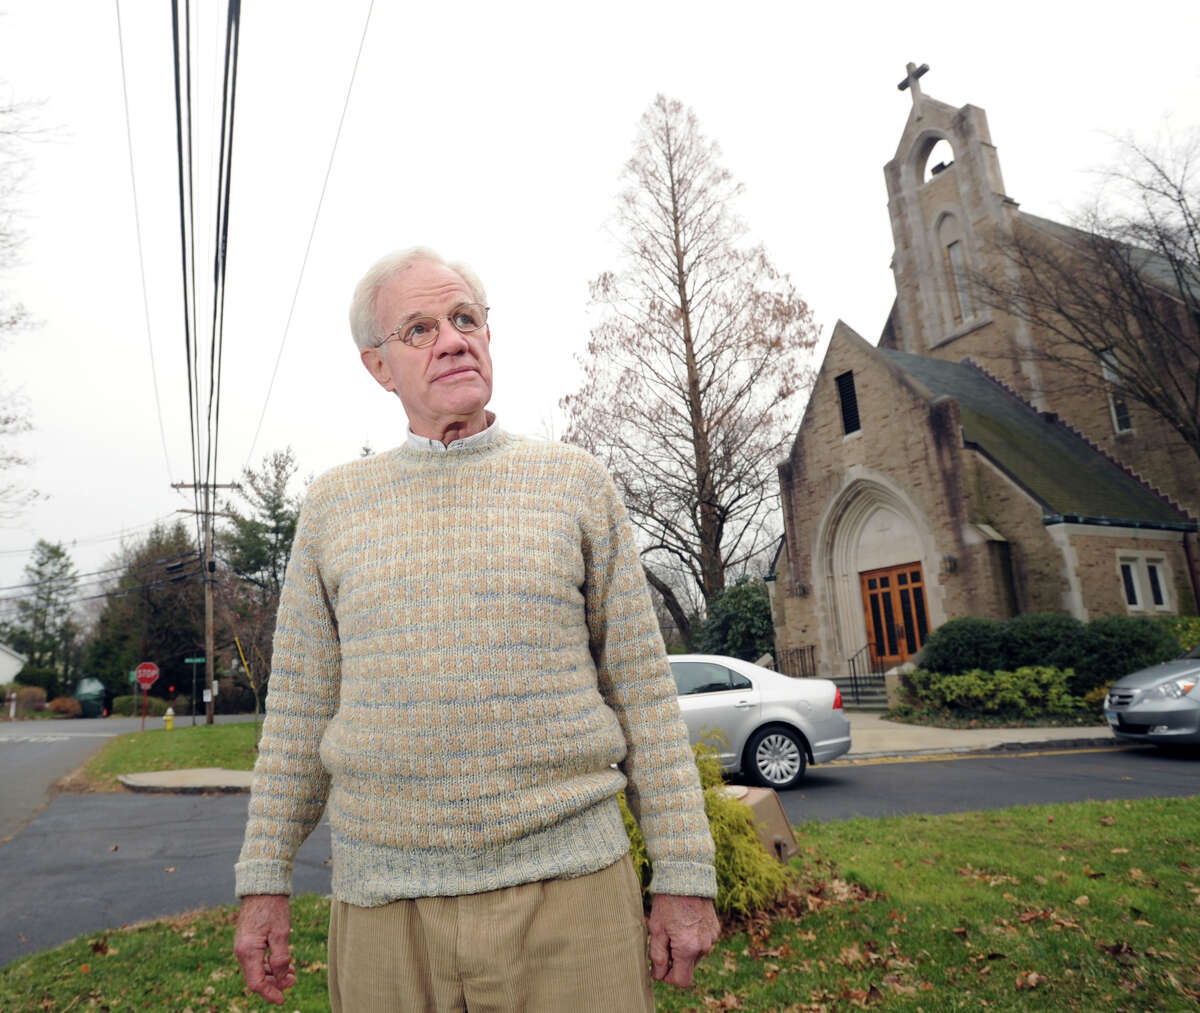 Bill Howland, president of the Riverside Association, in front of St. Paul's Episcopal Church in Riverside, Friday afternoon, Nov. 30, 2012. Howland, who lives in the neighborhood and attends the church, sees it as an anchor for the community.